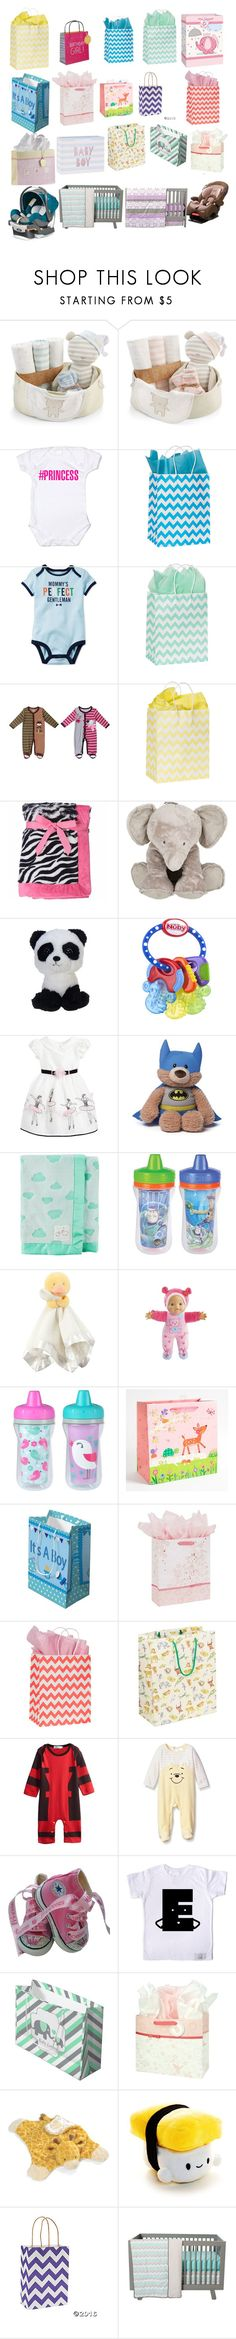 """""""baby shower gifts"""" by laylaitaly ❤ liked on Polyvore featuring Baby Aspen, Nöe, Carter's, Tartine et Chocolat, Nûby, Disney Pixar Finding Dory, Gund, The First Years, Marvel and Disney"""